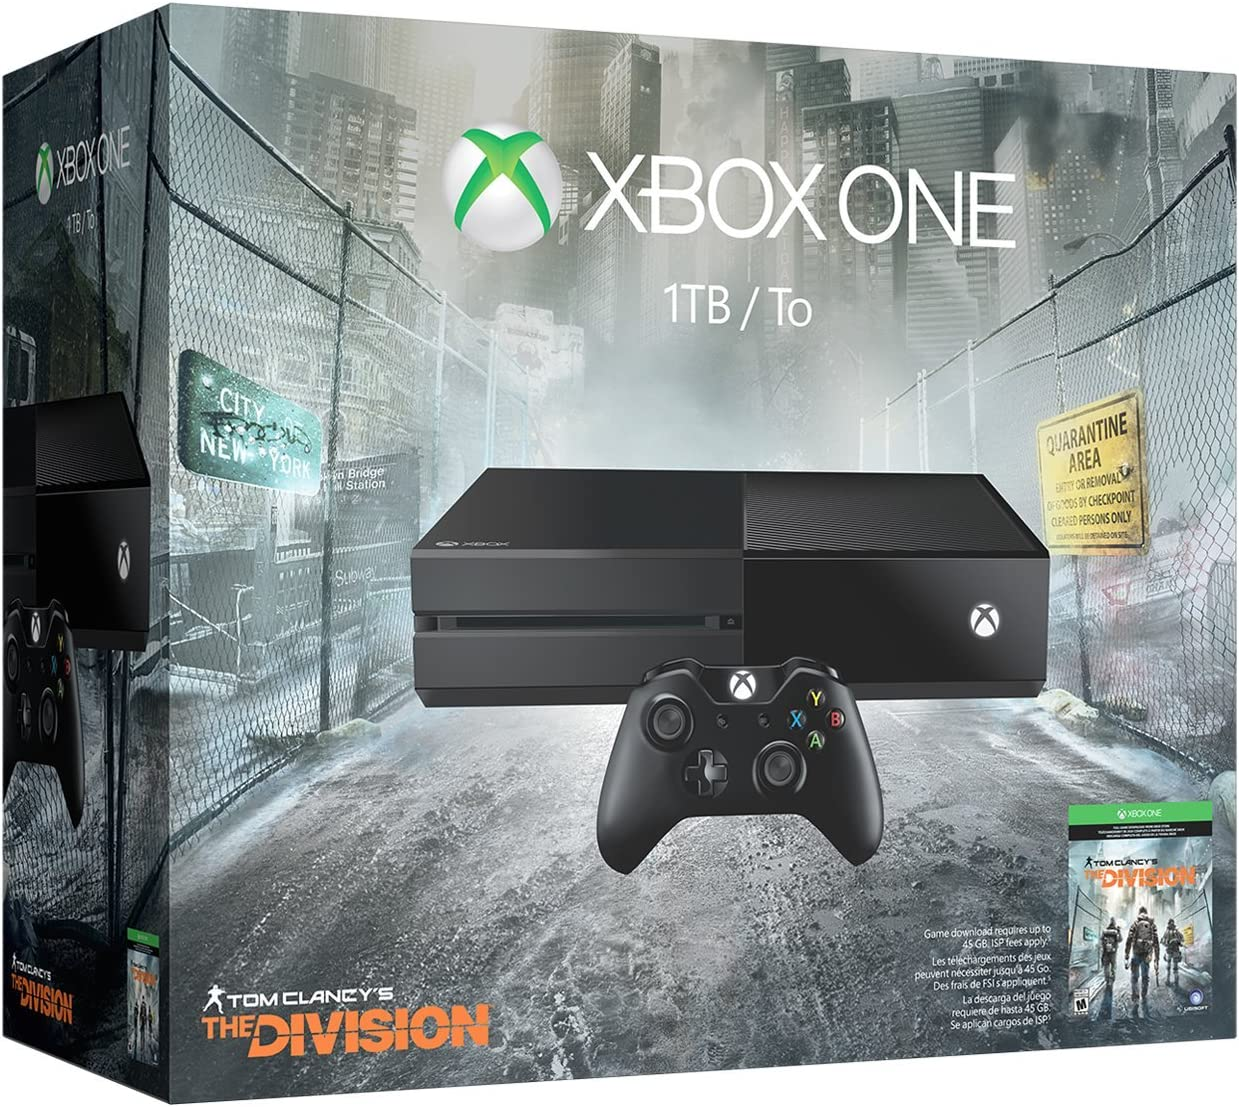 Amazon com: Xbox One 1TB Console - Tom Clancy's The Division Bundle